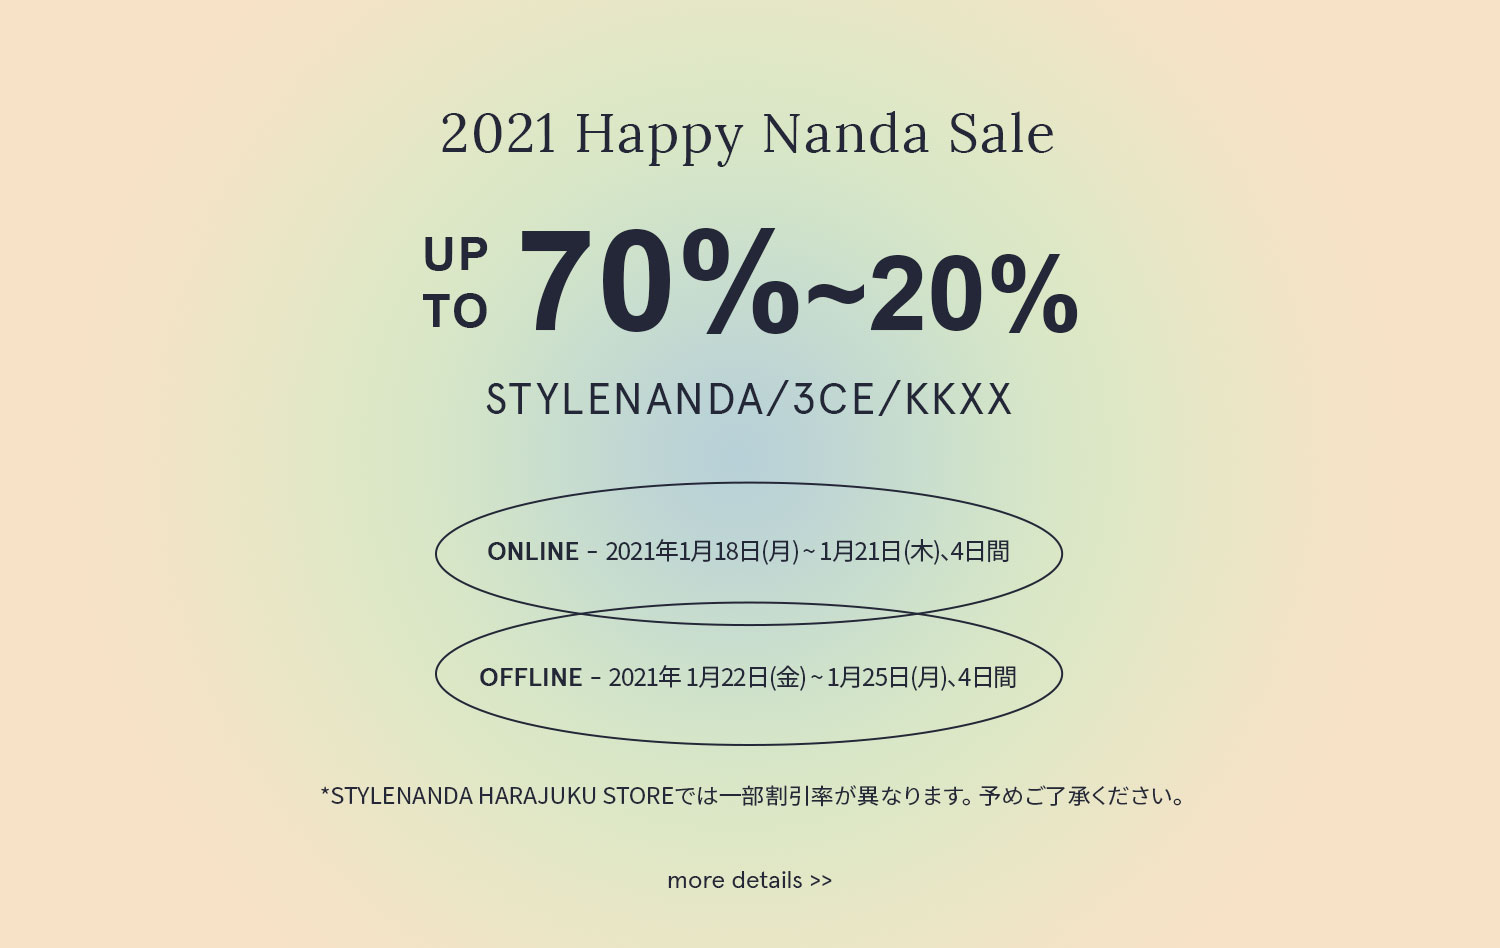 HAPPY NANDA SALE